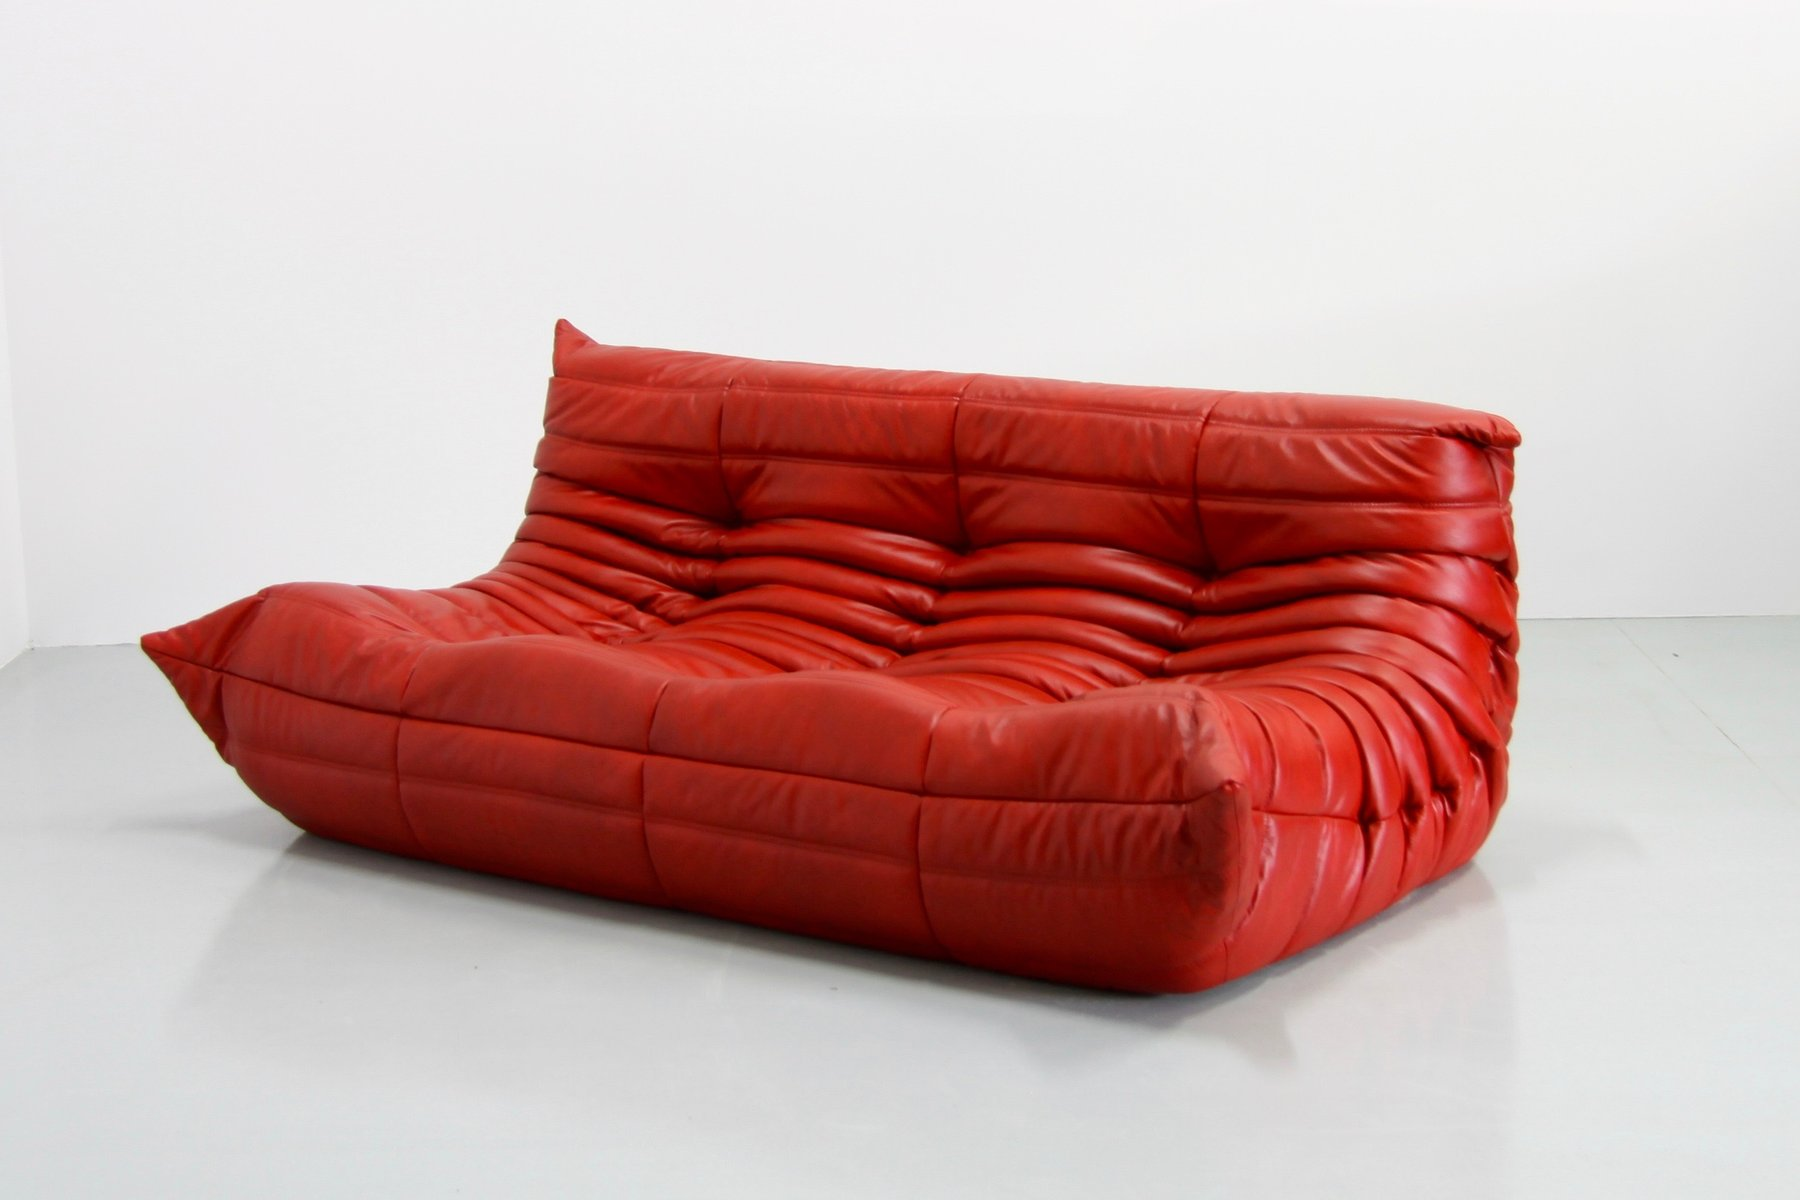 Vintage Red Leather Togo Sofa by Michel Ducaroy for Ligne Roset for sale at Pamono